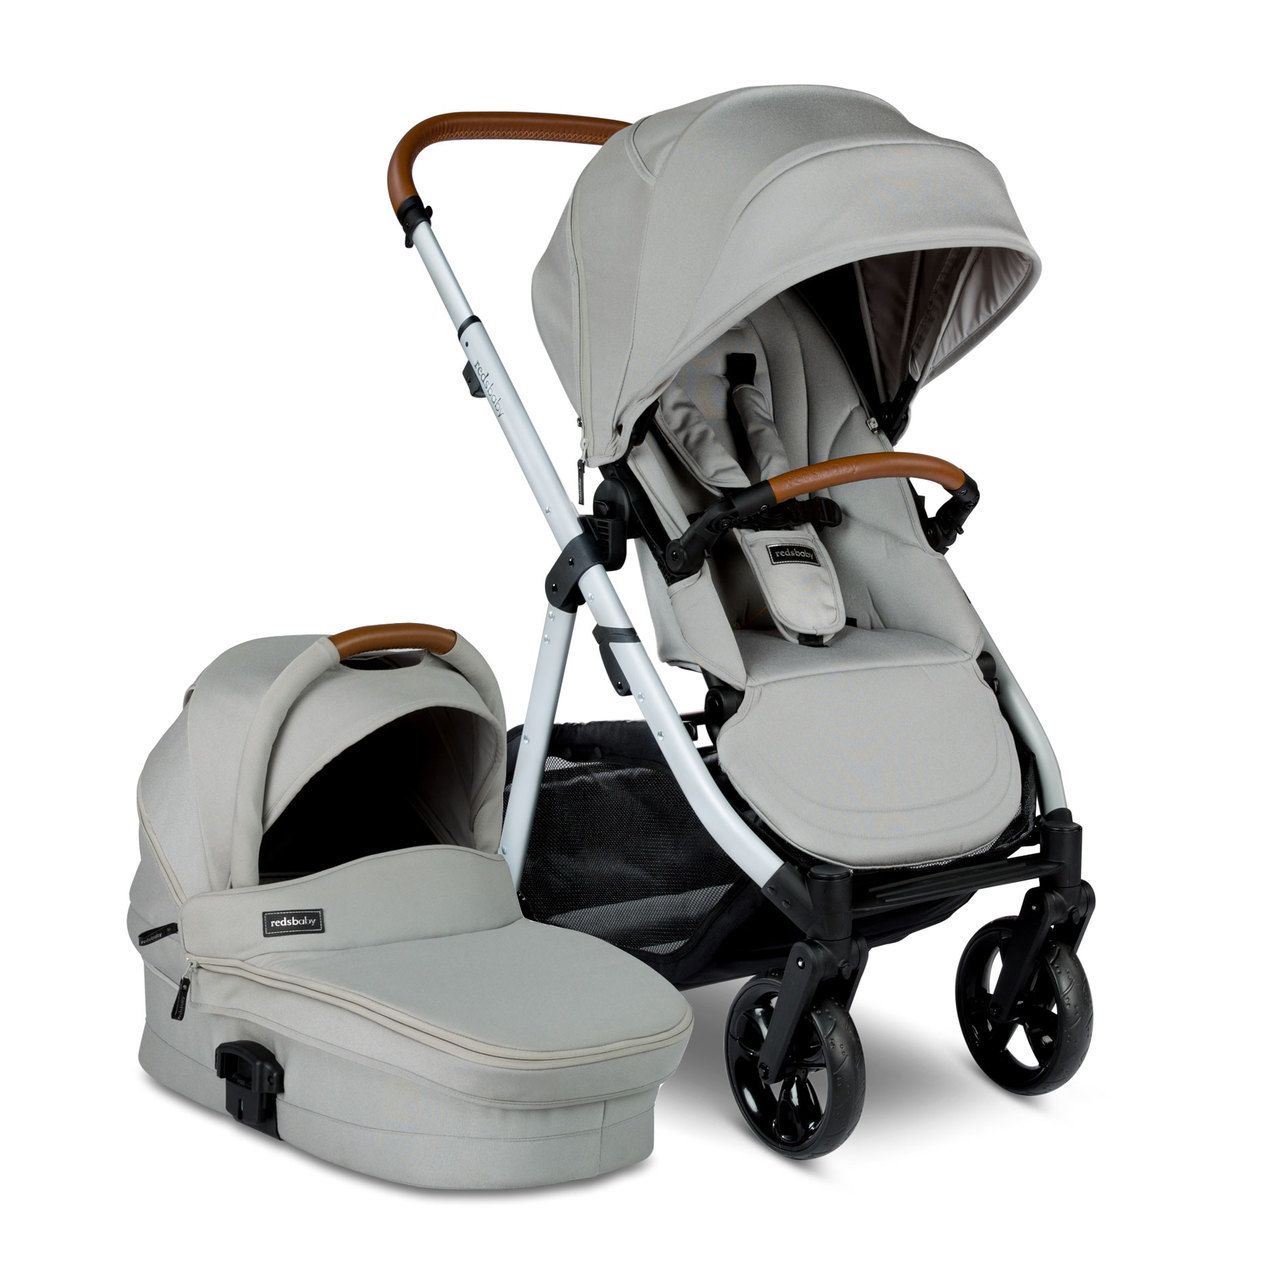 Looking for a stroller that delivers the perfect